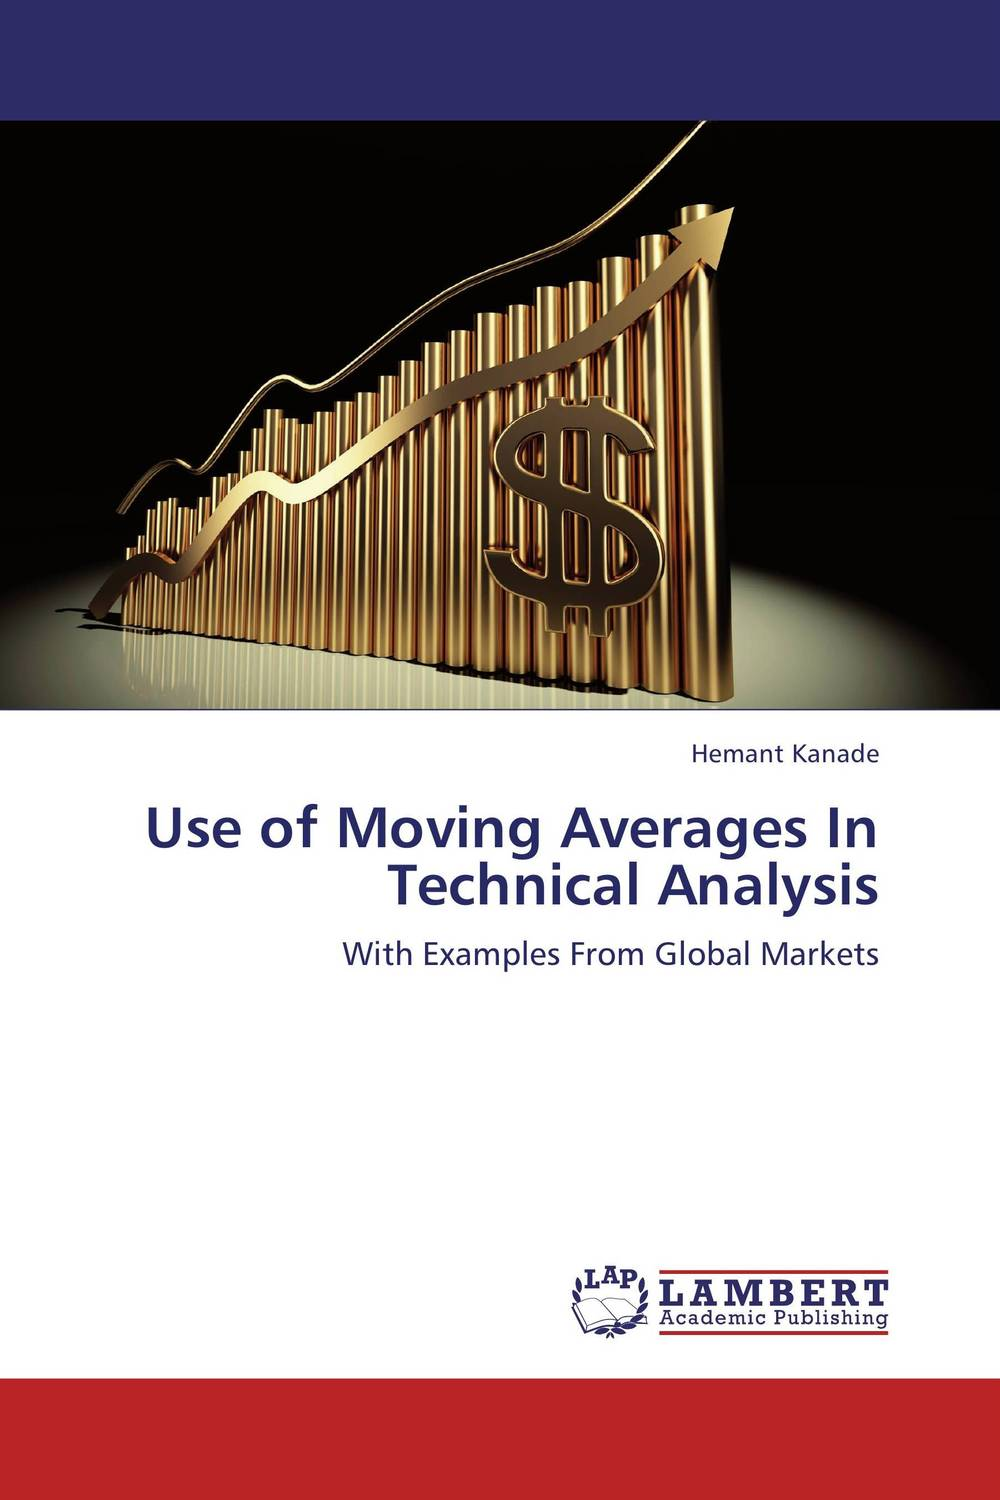 Use of Moving Averages In Technical Analysis edgar iii wachenheim common stocks and common sense the strategies analyses decisions and emotions of a particularly successful value investor